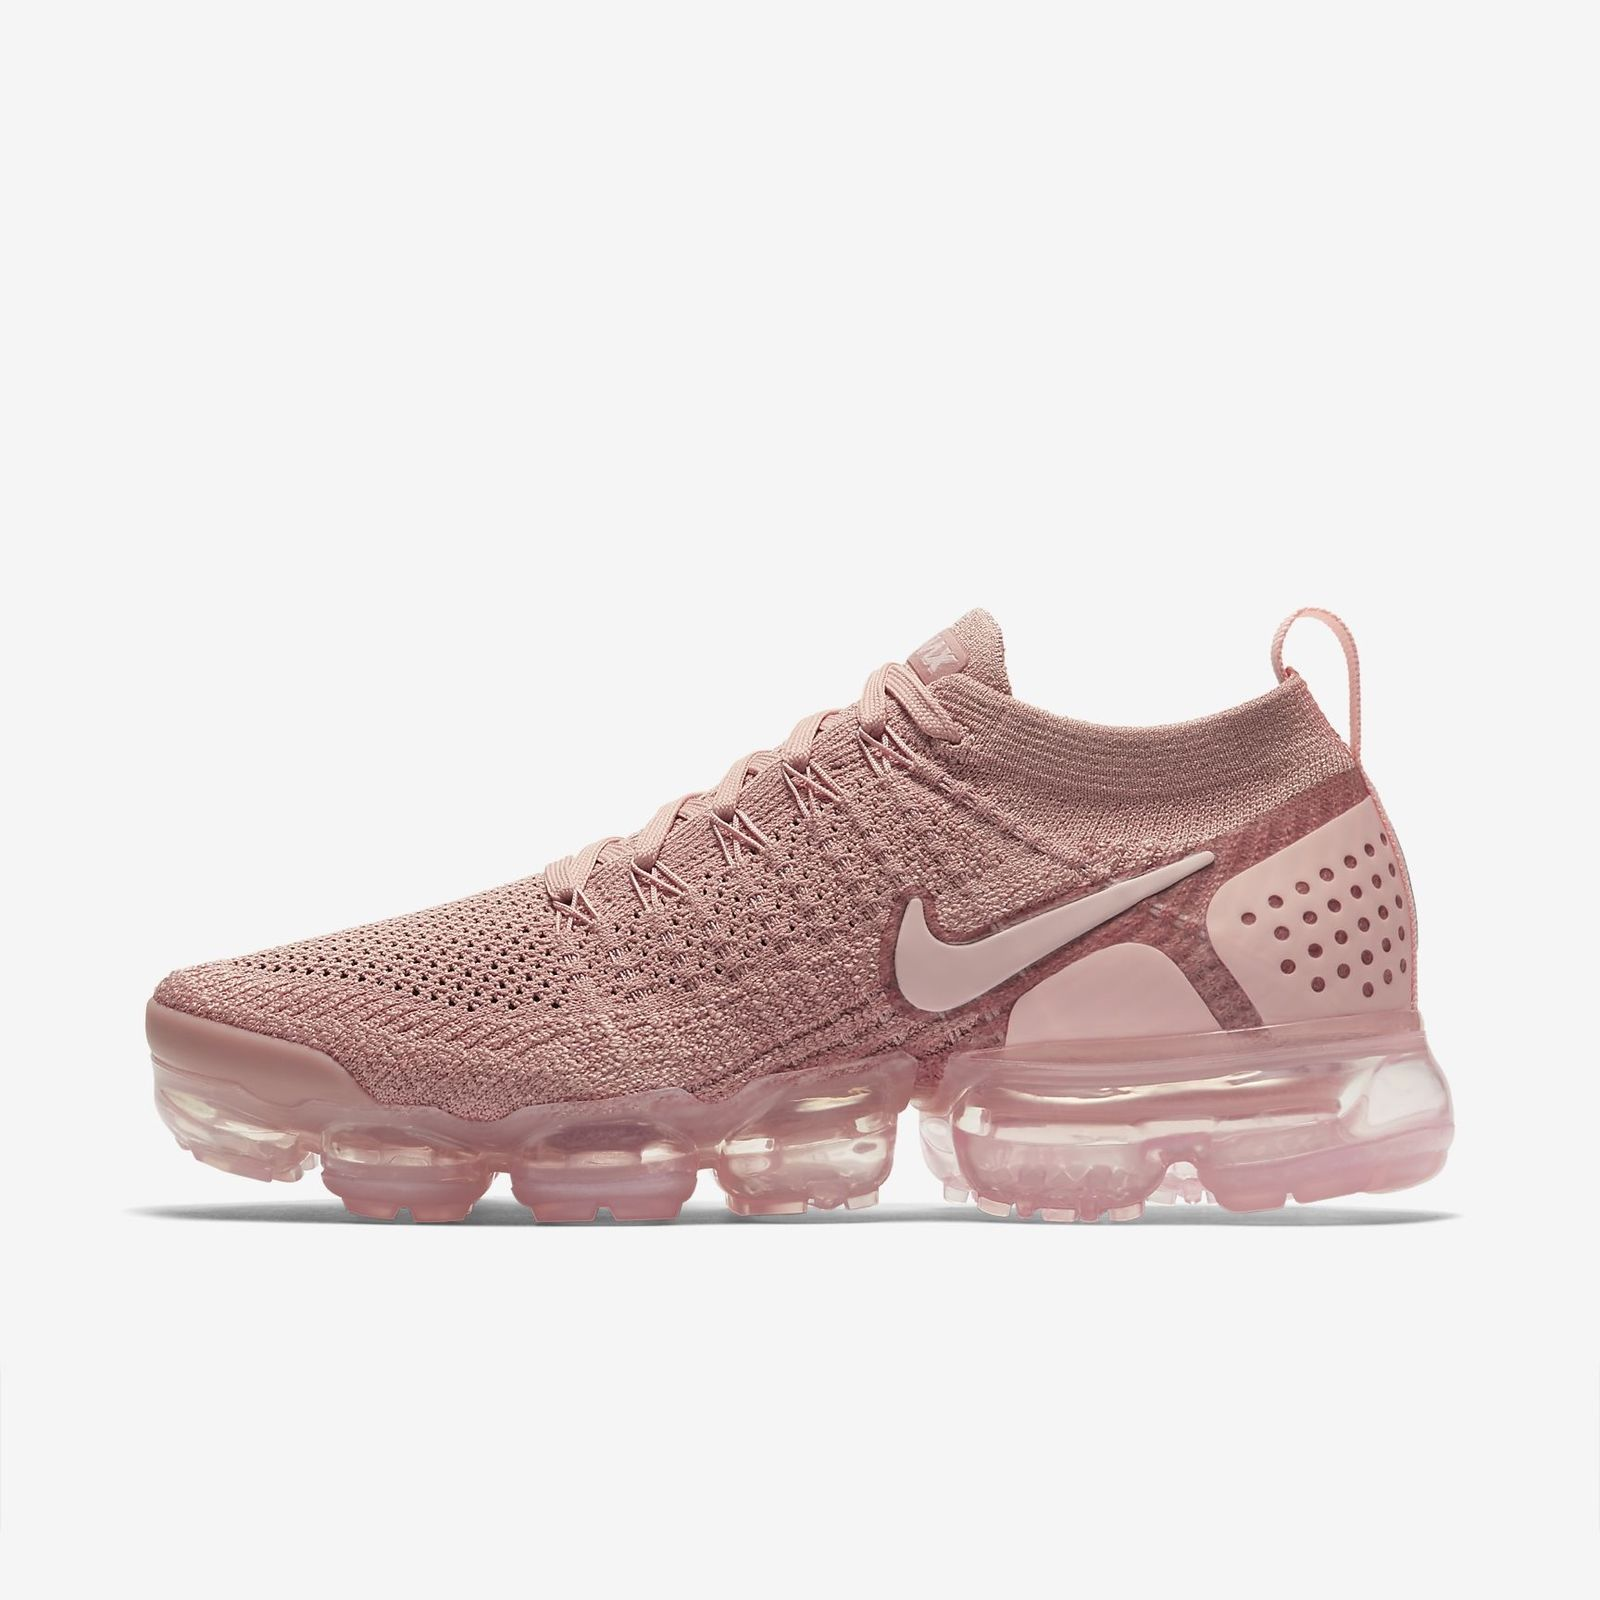 28cd372e6df379 Details about NIKE AIR VAPORMAX FLYKNIT 2 942843-600 RUST PINK STORM PINK  PINK TINT